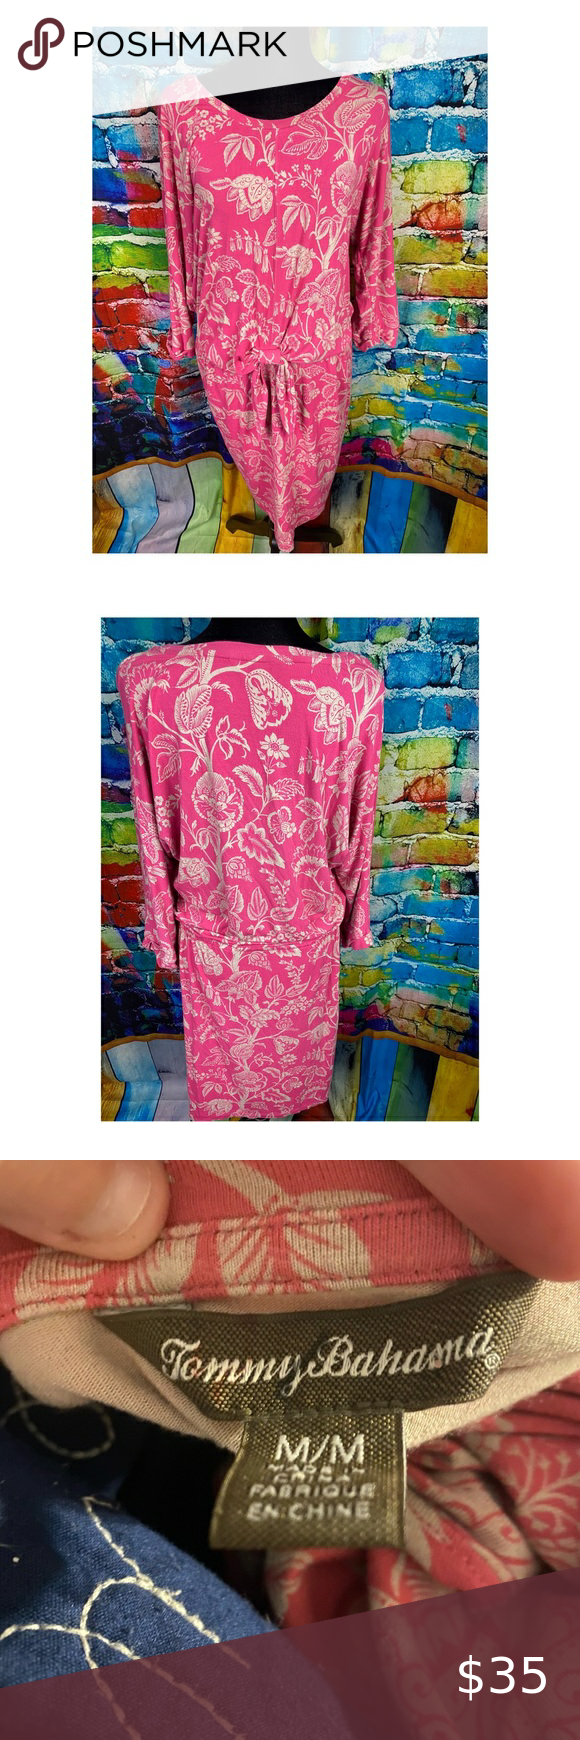 Tommy Bahama Floral Pink Dress M Tommy Bahama Floral Pink Dress Super Cute With Bow Front And Waisted In Great Pink Floral Dress Tommy Bahama Dress Pink Dress